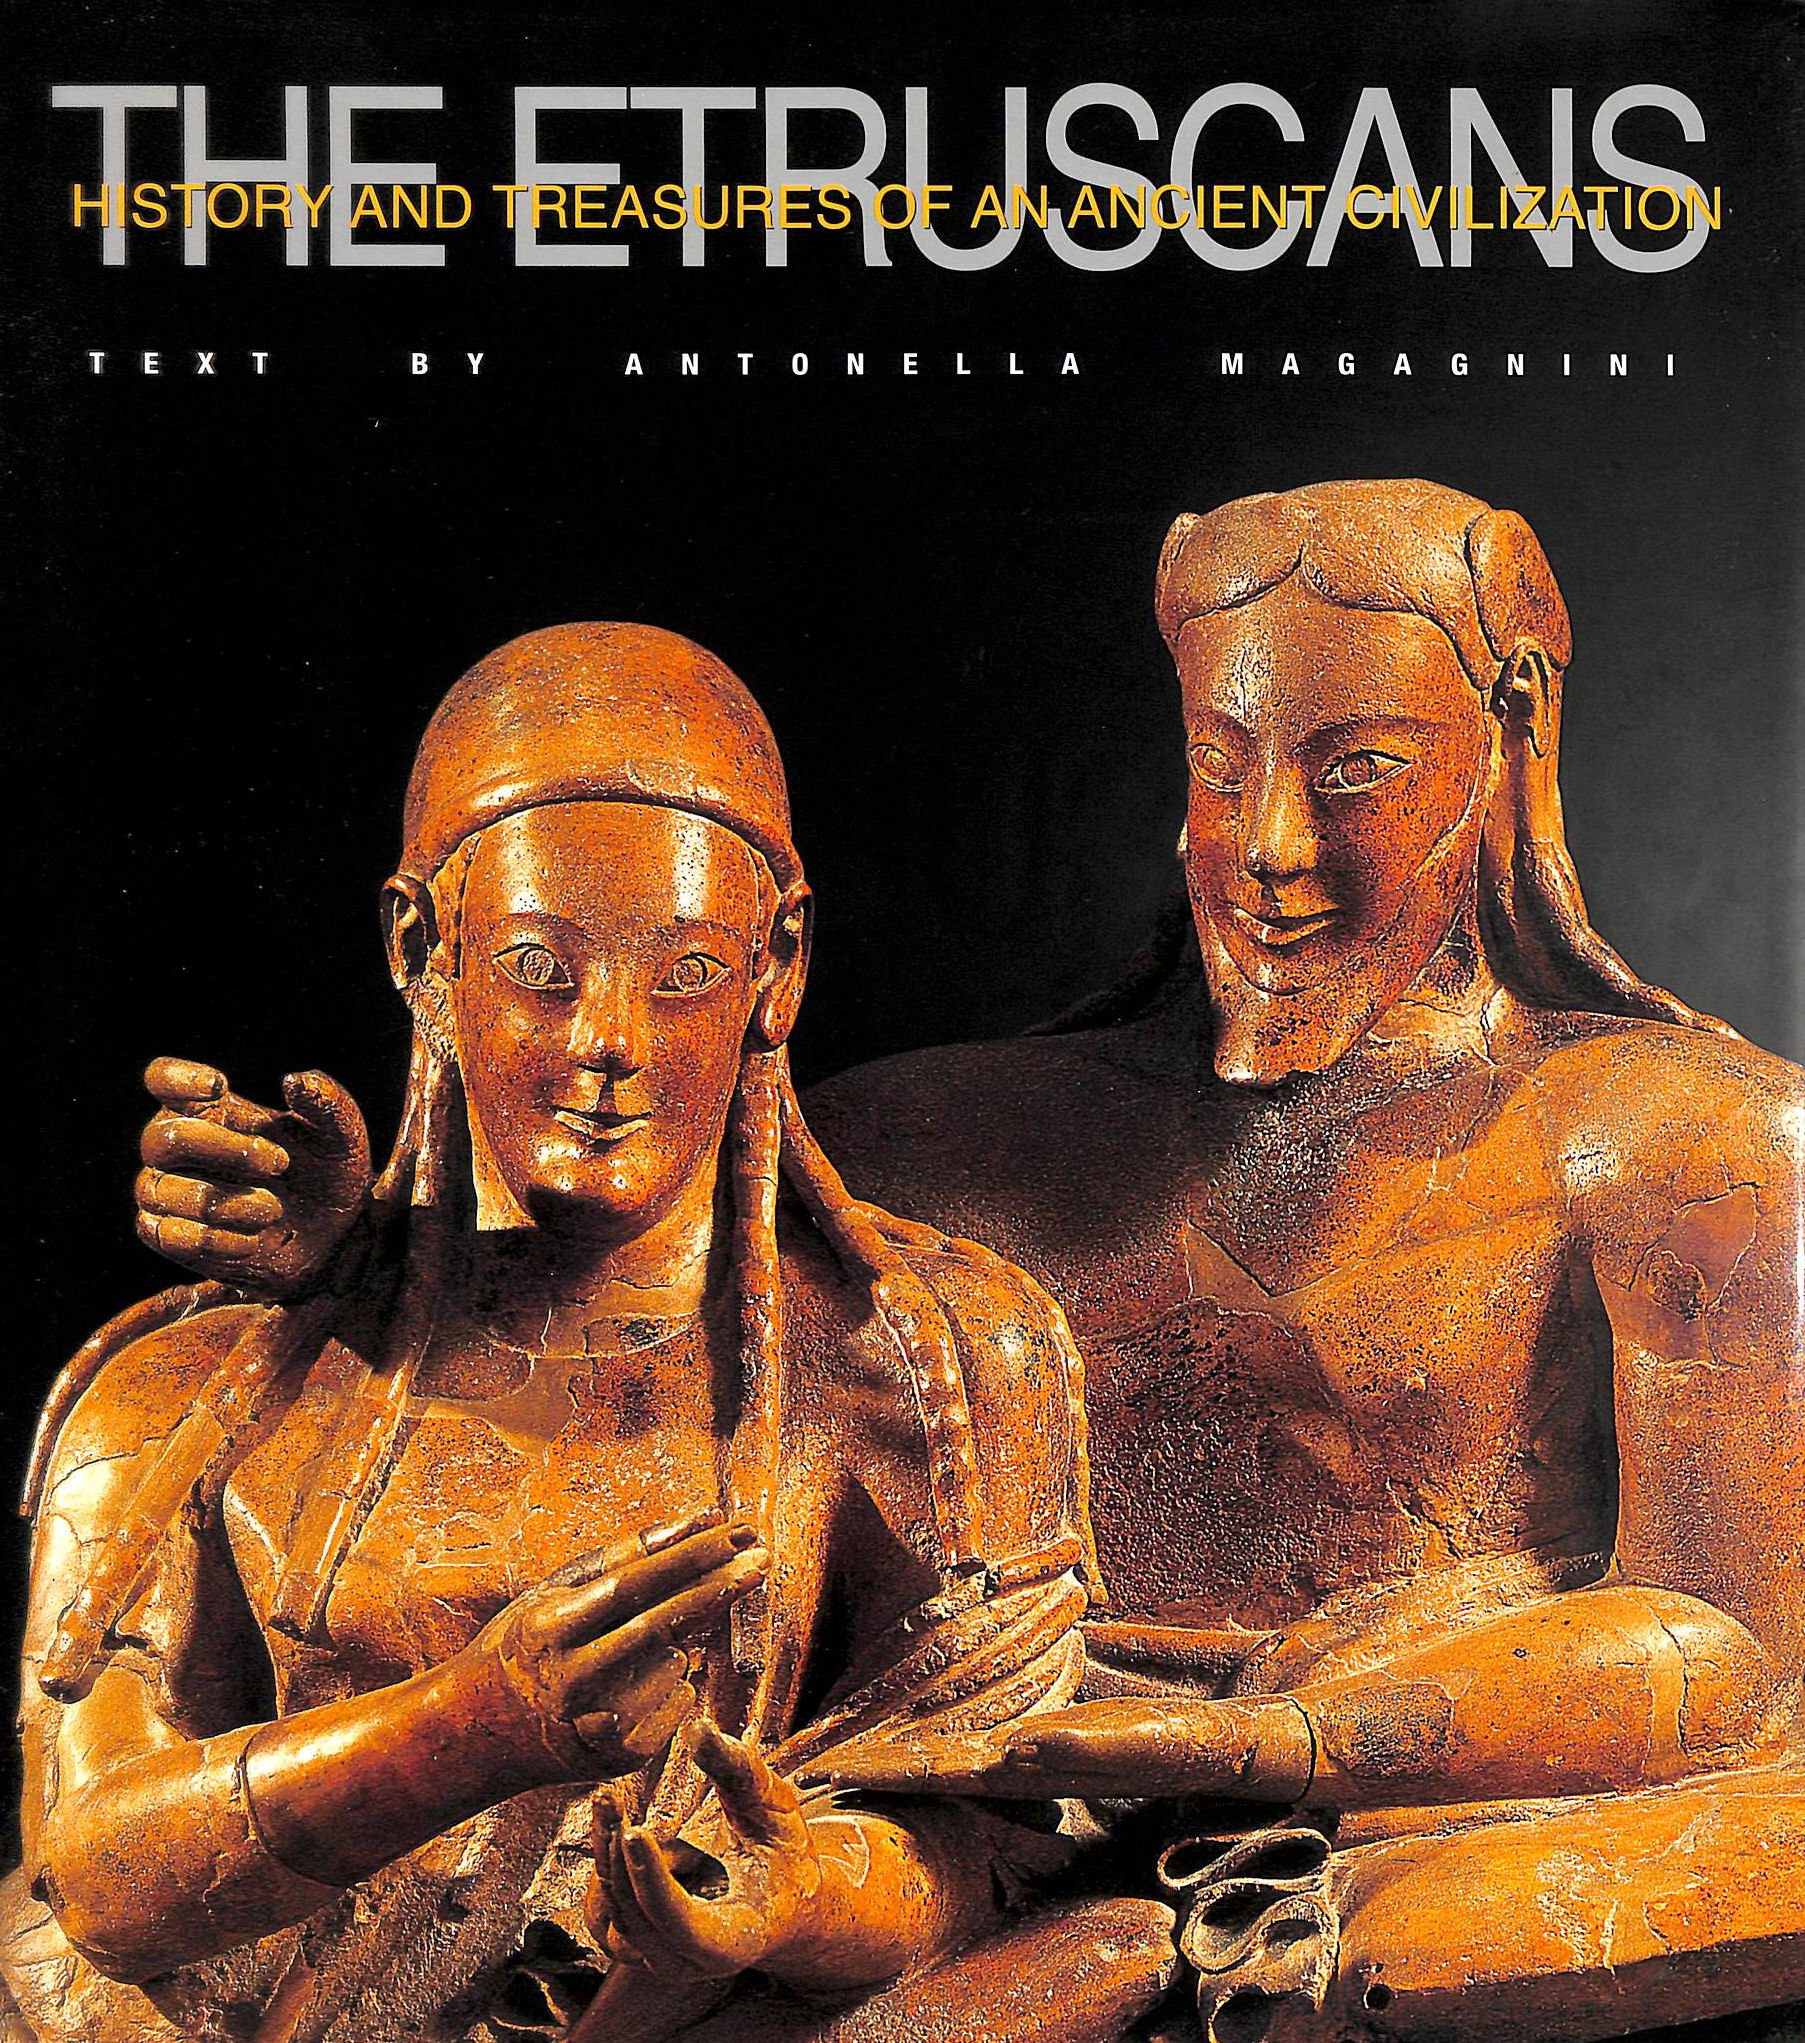 Image for The Etruscans (History and Treasures of an Ancient Civilization)